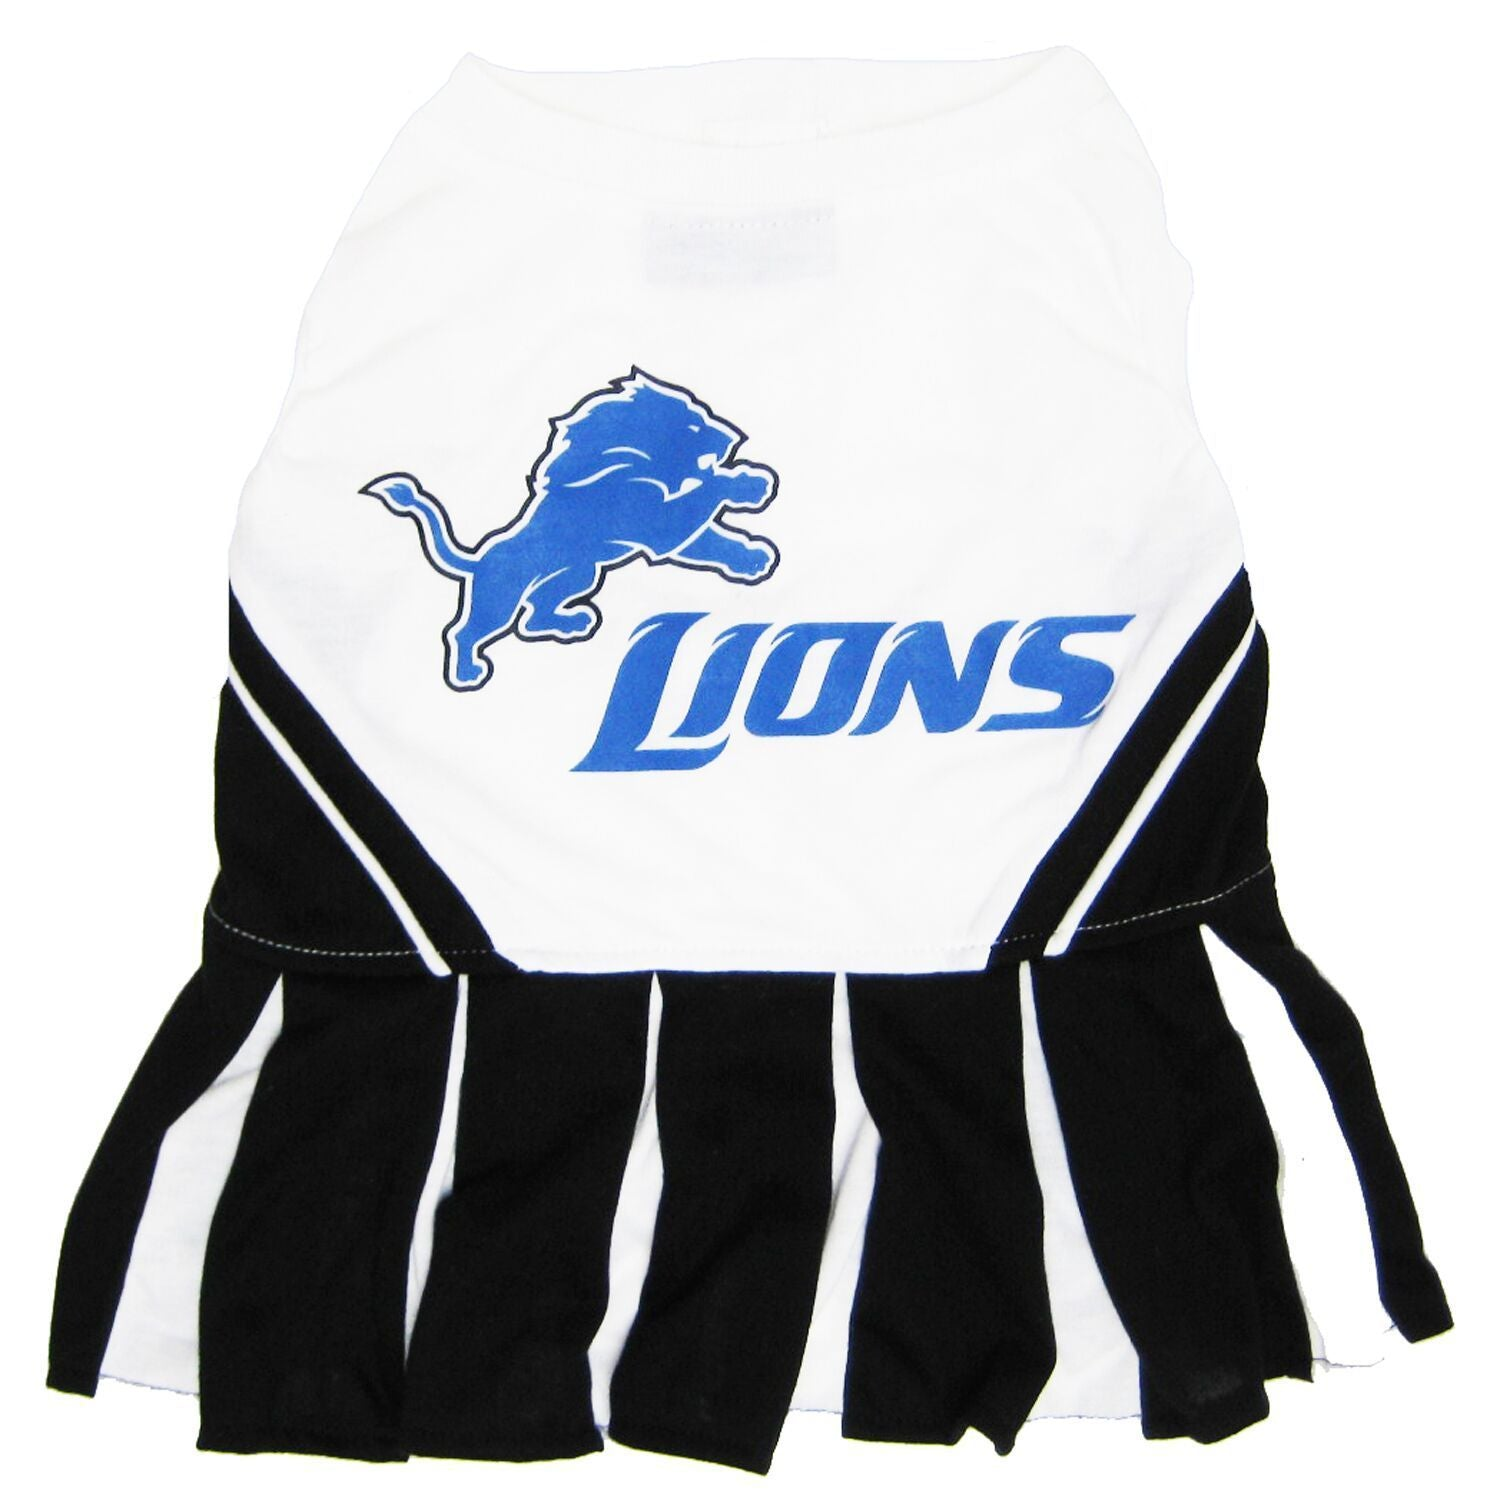 Detroit Lions Puppy Dog Football Jersey Collar Leash - Jersey Champs - Custom Basketball, Baseball, Football & Hockey Jerseys